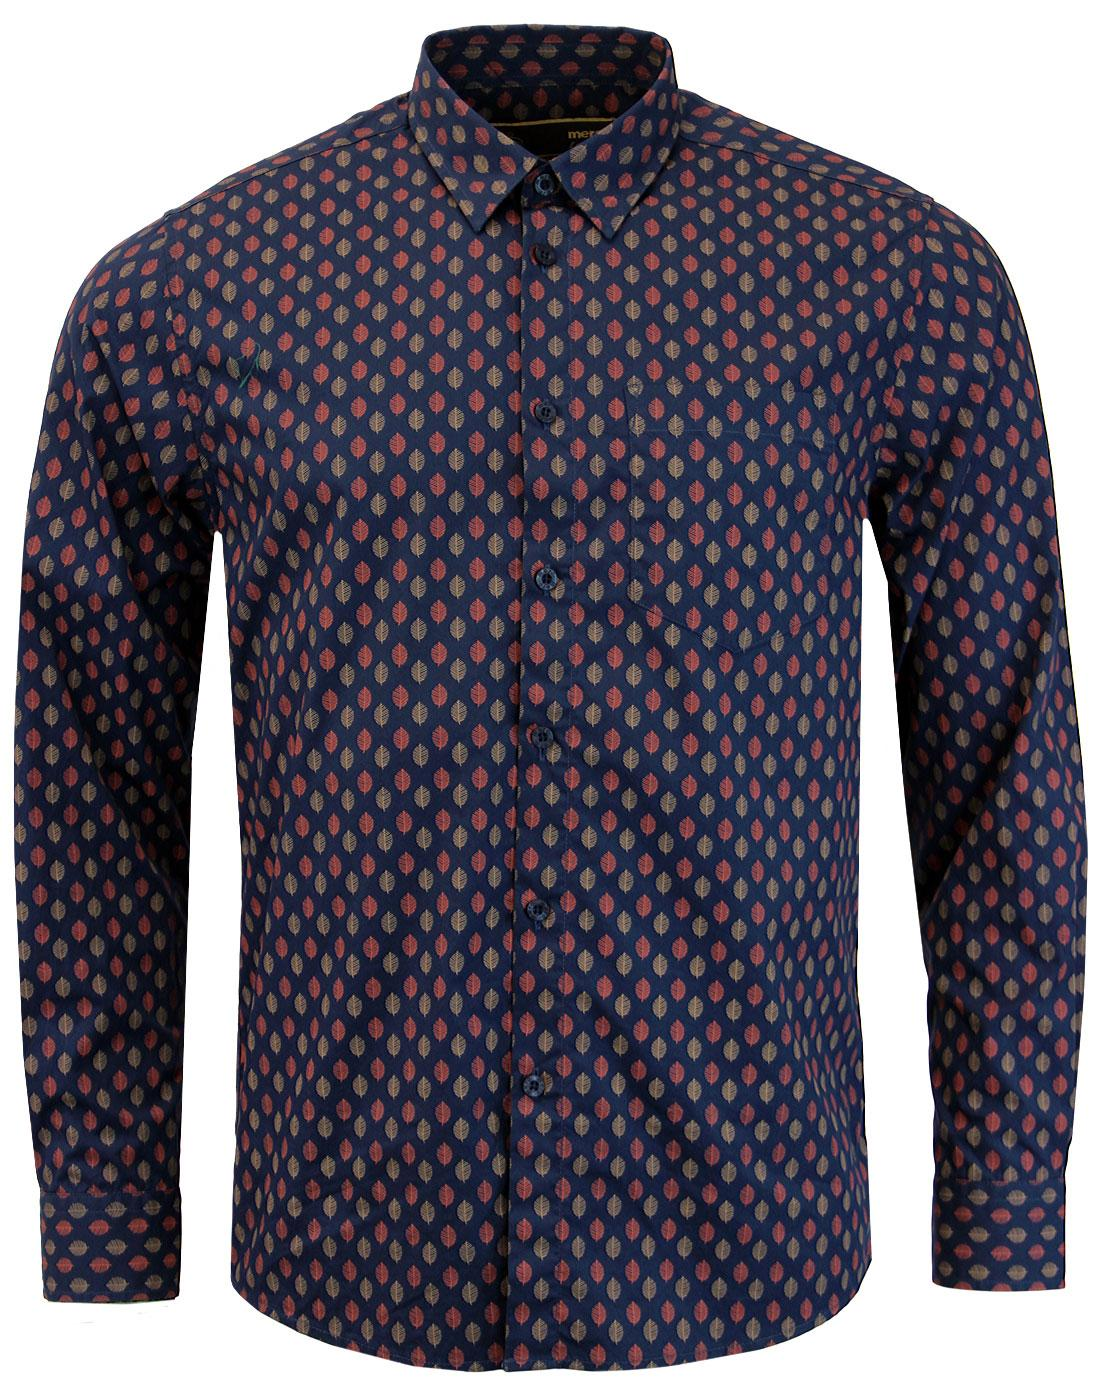 Lloyd MERC Men's 1960s Mod Leaf Print Shirt NAVY